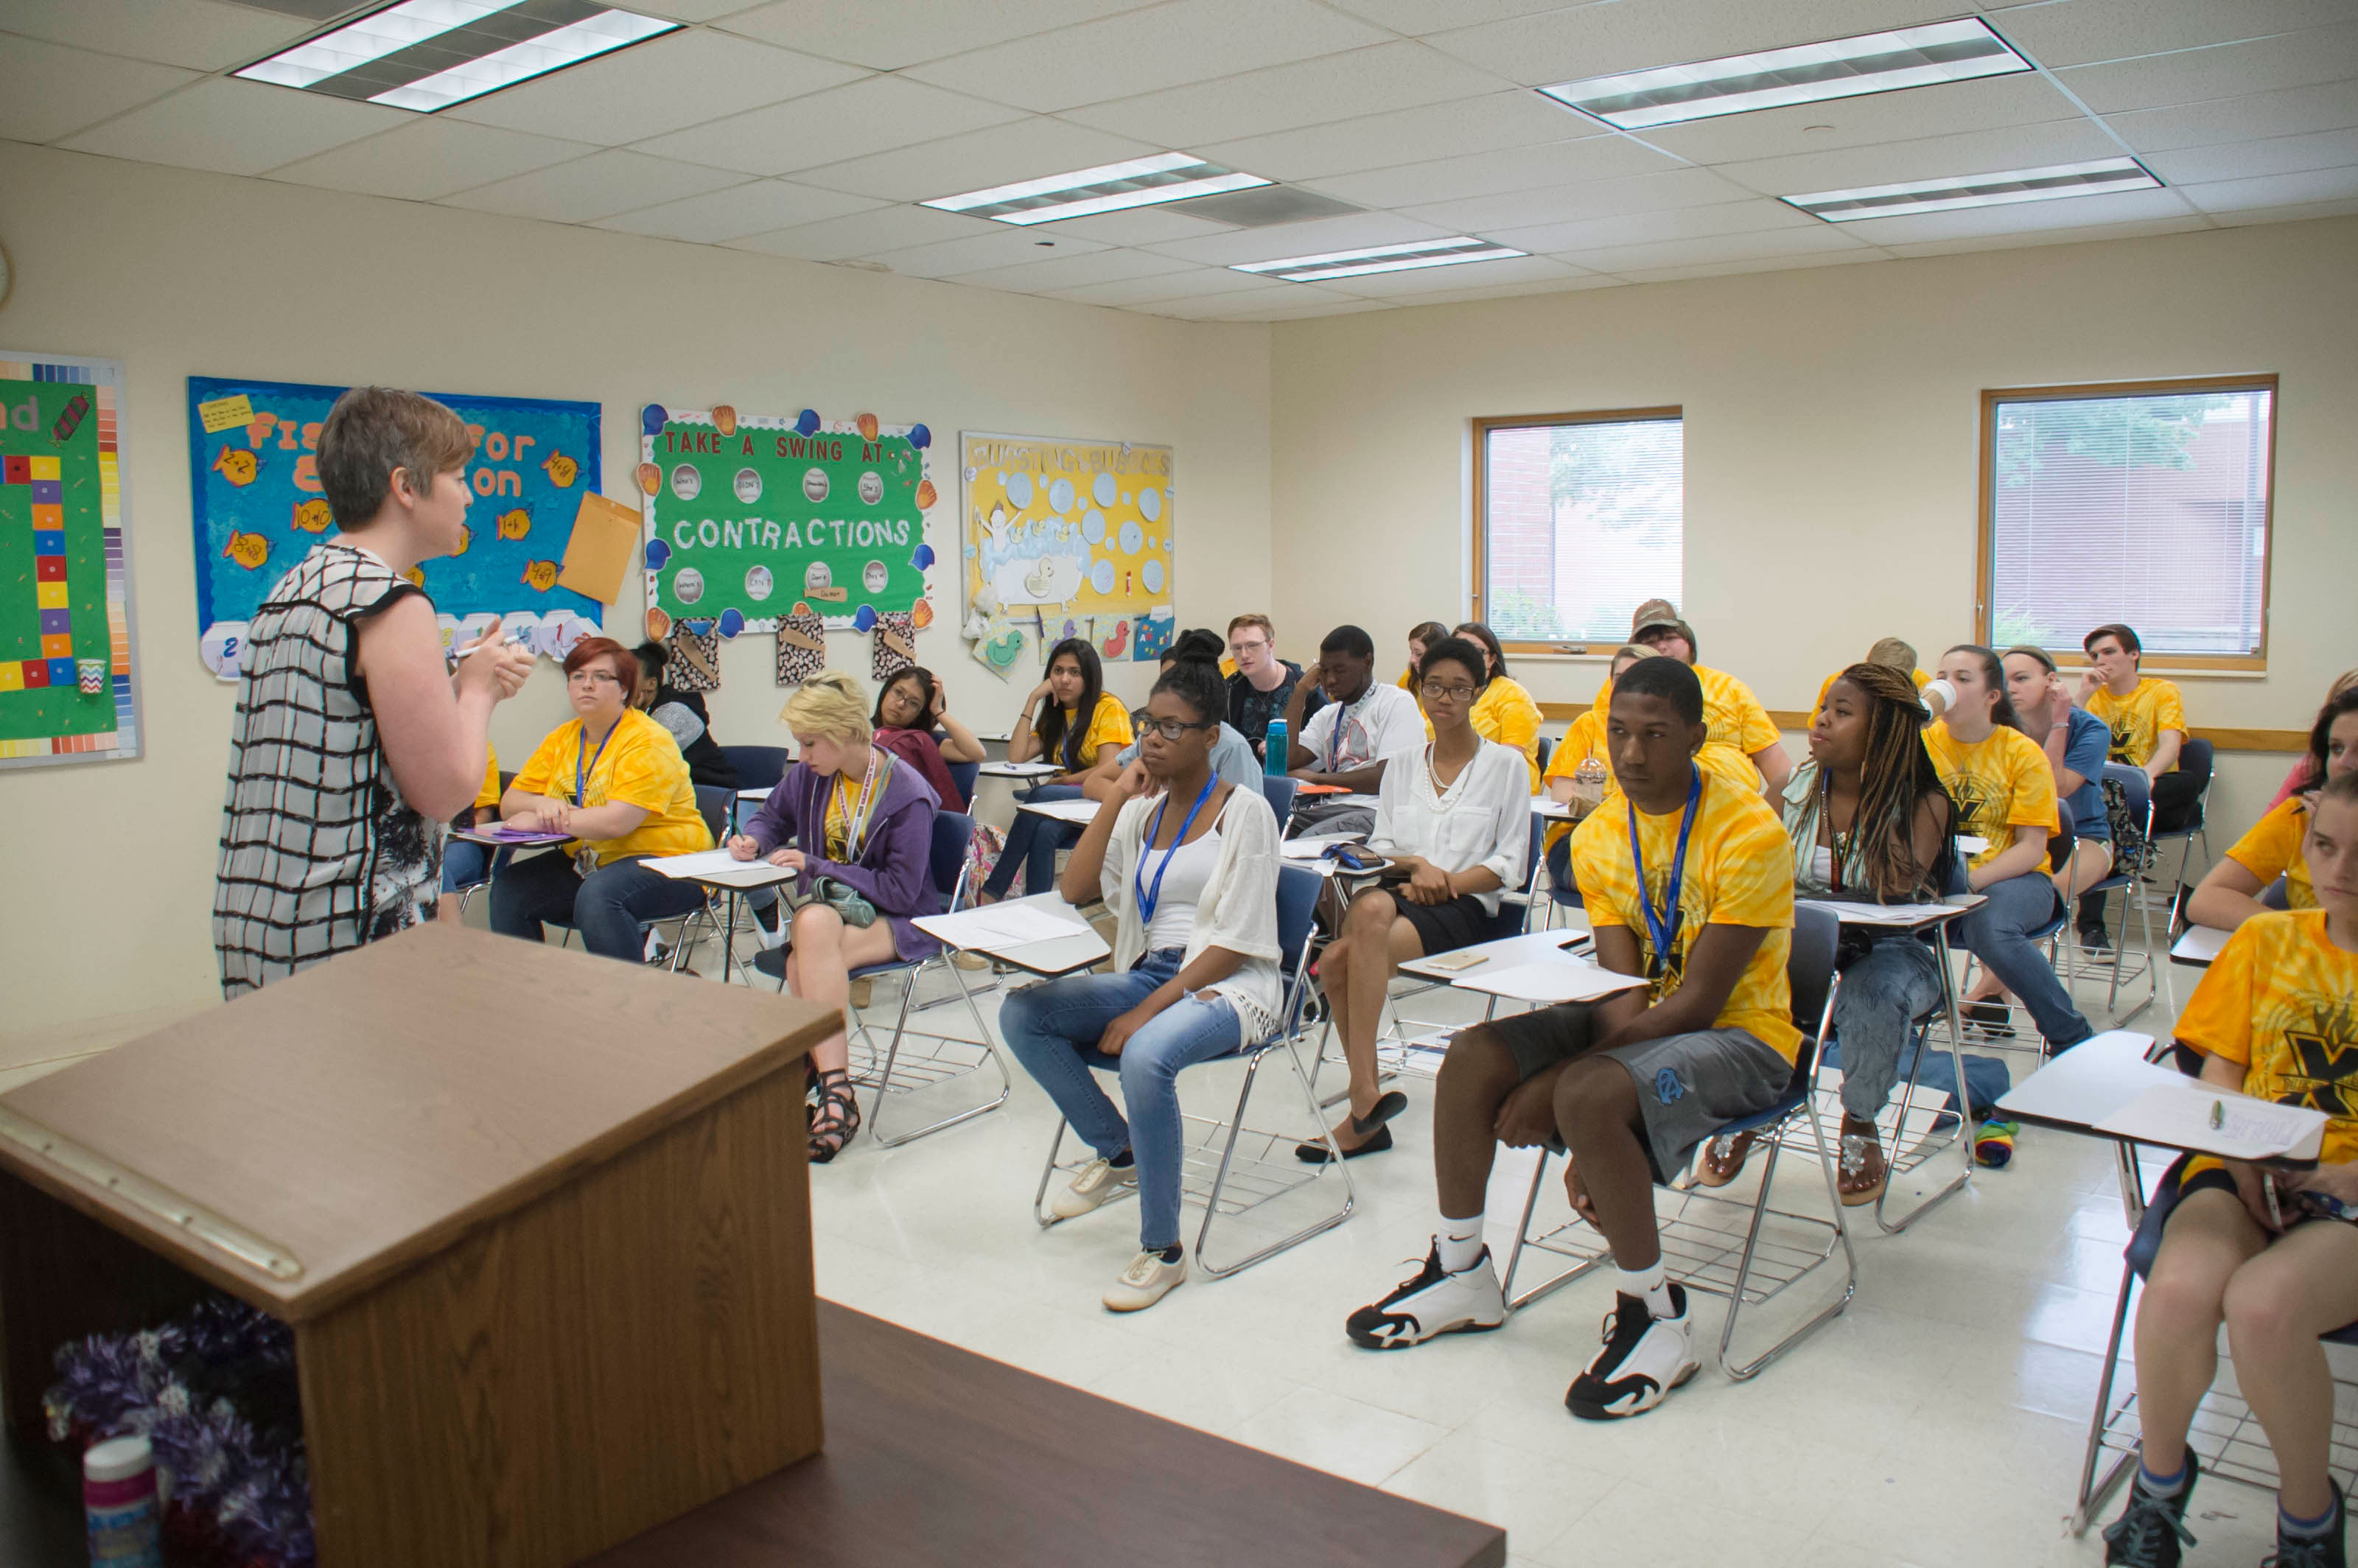 X-mester classroom at Vincennes University